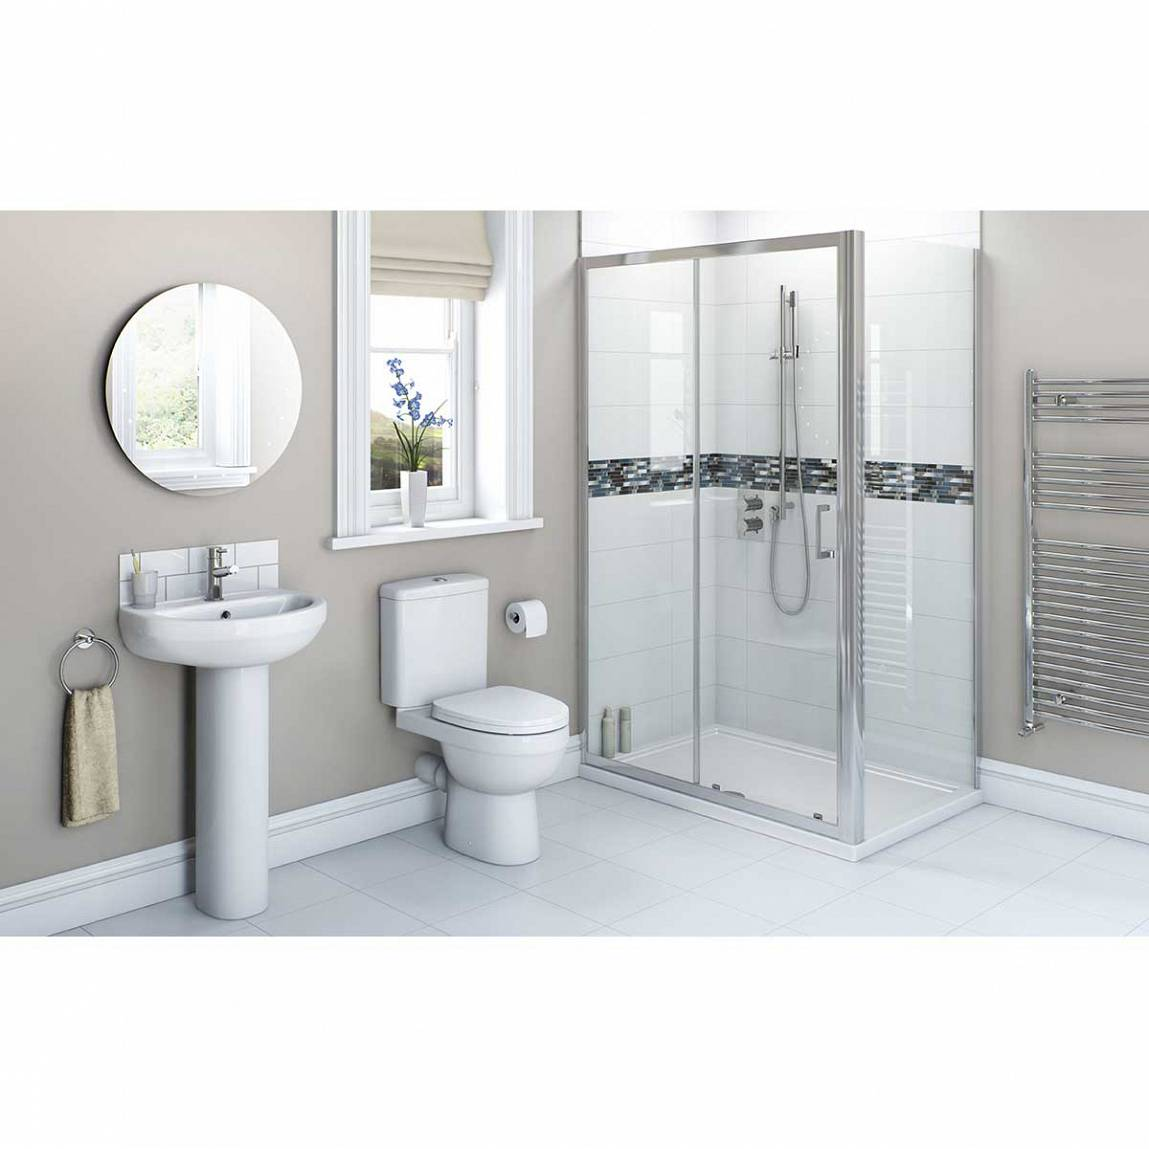 Image of Energy Bathroom set with Sliding Enclosure 1200x760